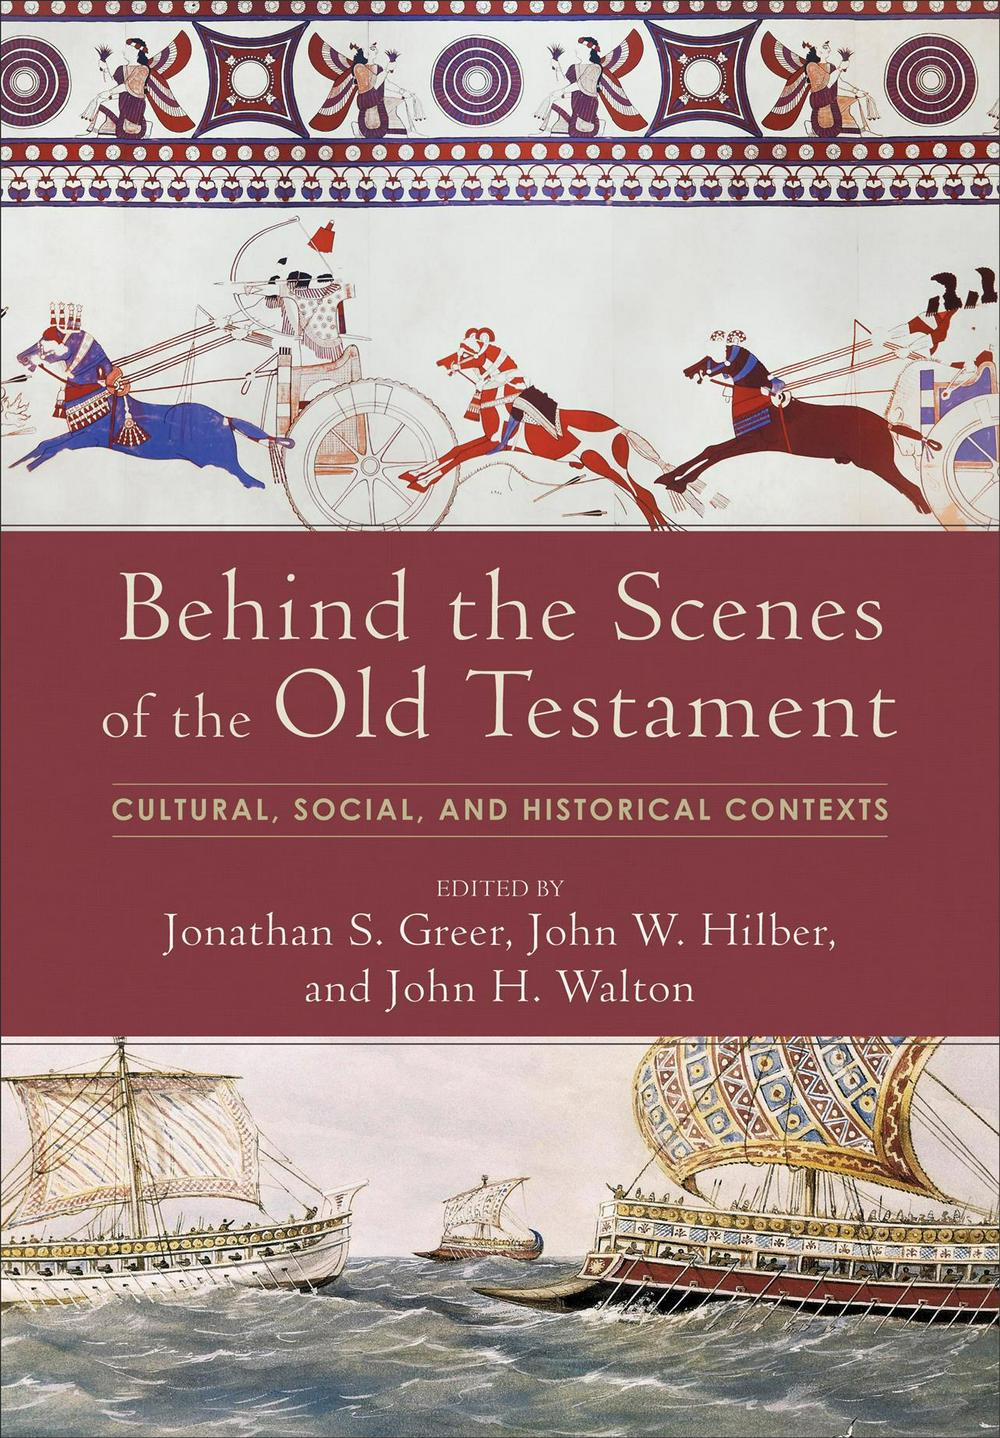 Behind the Scenes of the Old Testament: Cultural, Social, and Historical Contexts by Jonathan S. Greer, John W. Hilber, John H. Walton, ISBN: 9780801097751